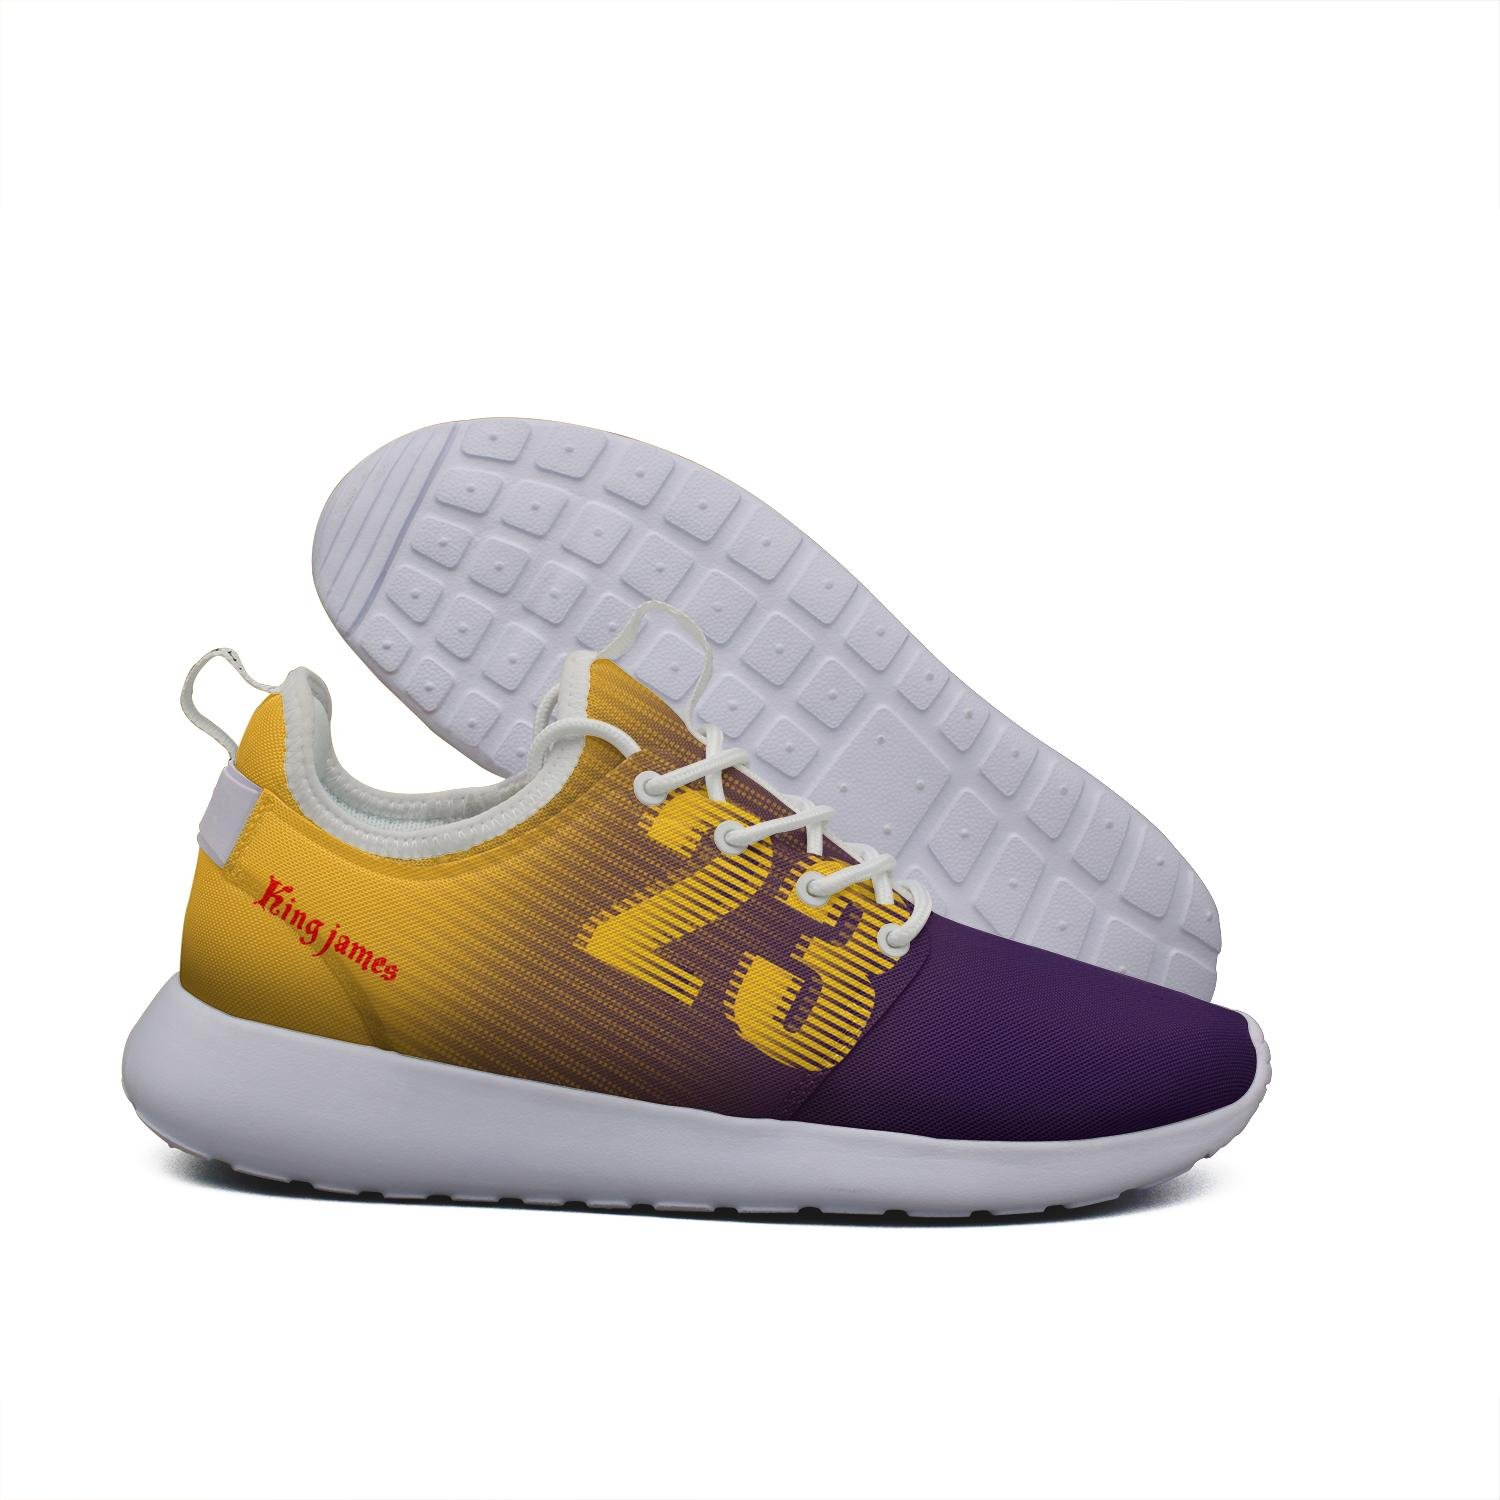 784818acc8d48 Basketball Player Shoes - Shoes Collections